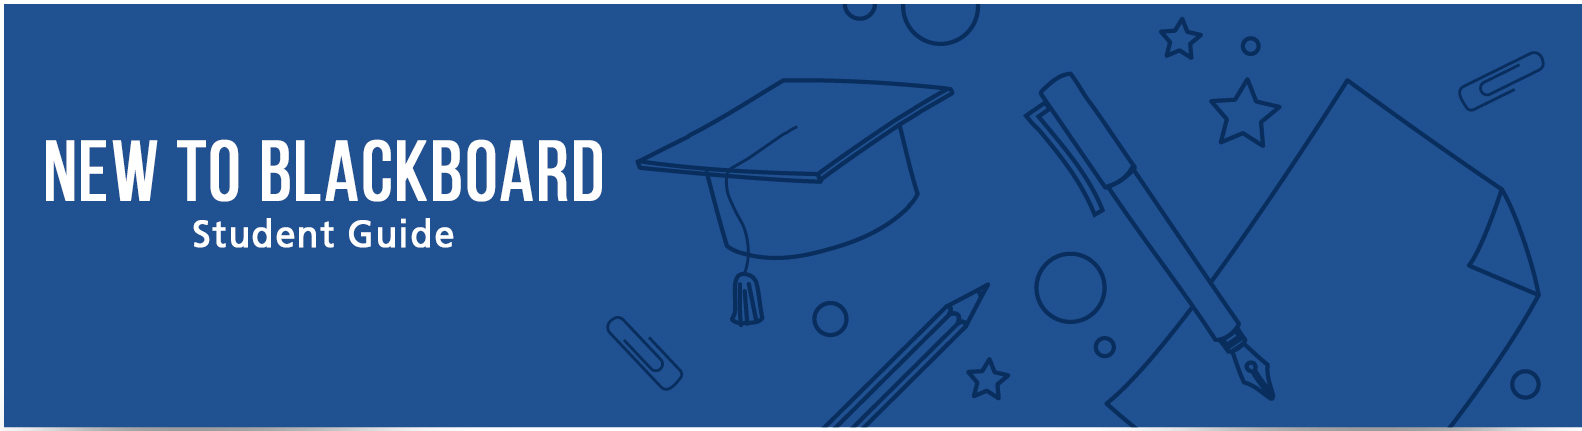 Blue banner with text New to Blackboard Student Guide